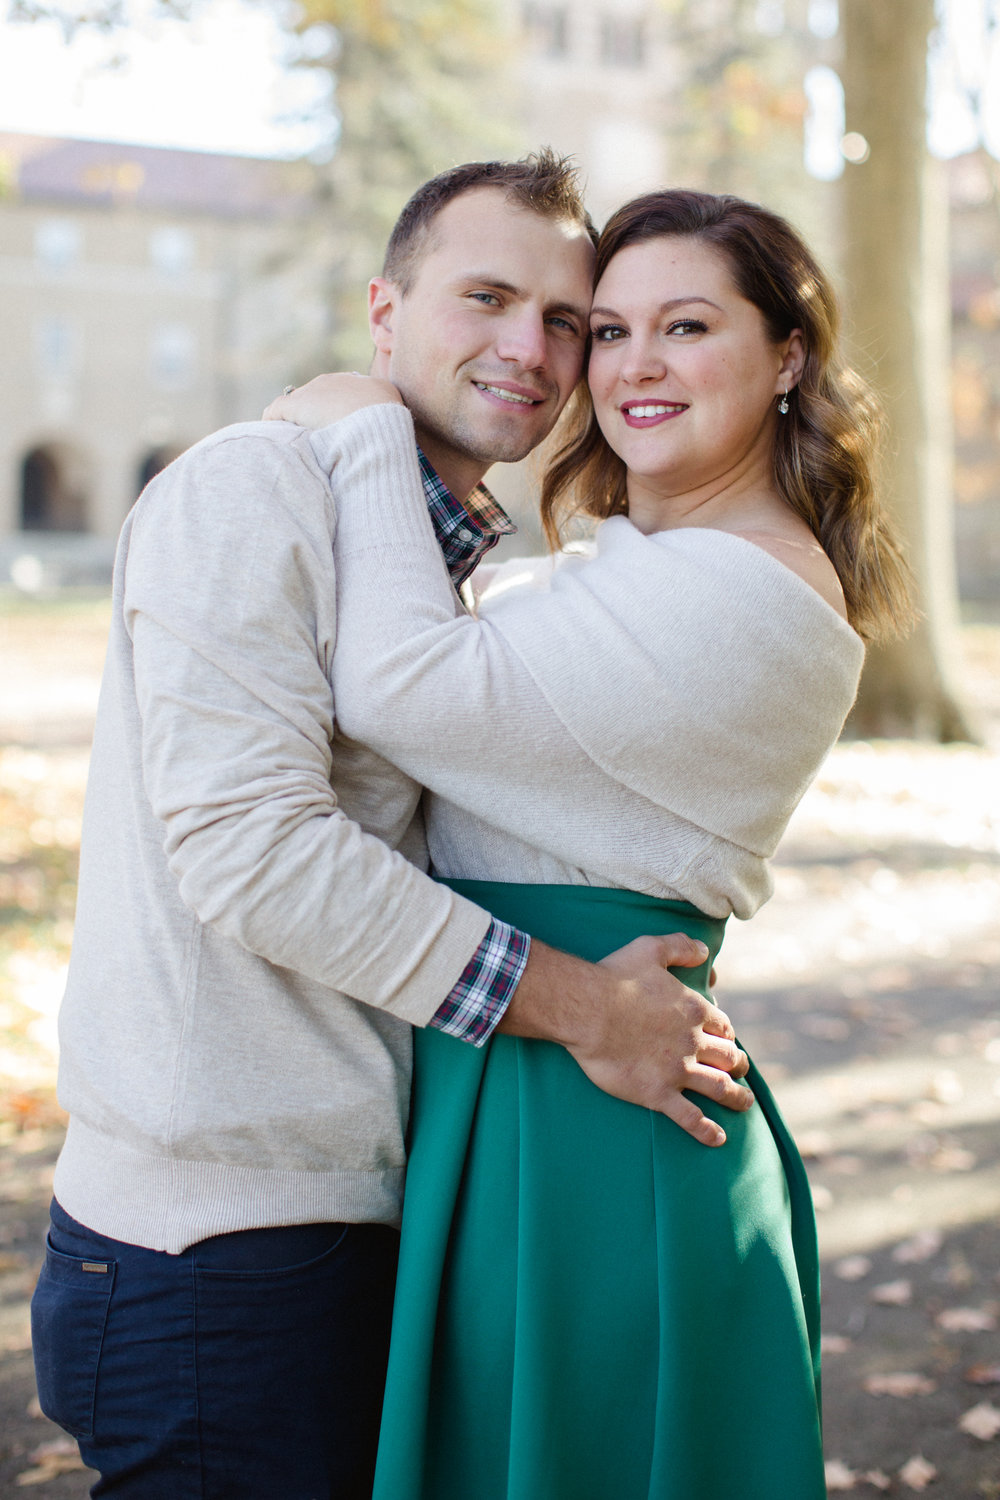 Clarks Summit PA Fall Engagement Anniversary Session Photos SP_JDP-15.jpg